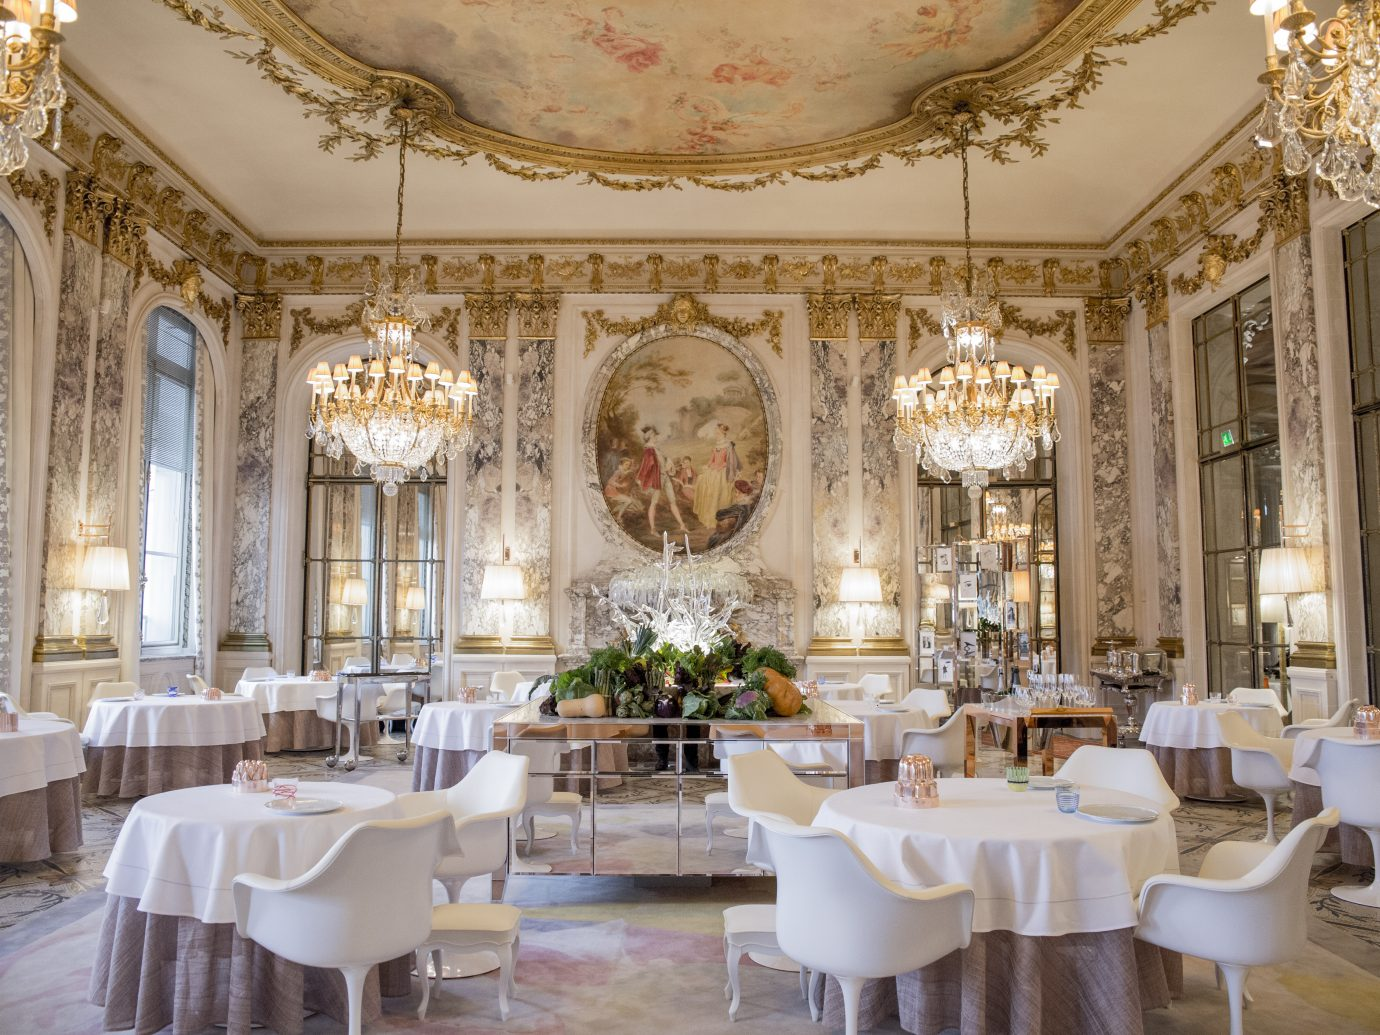 Restaurant at Le Meurice in Paris